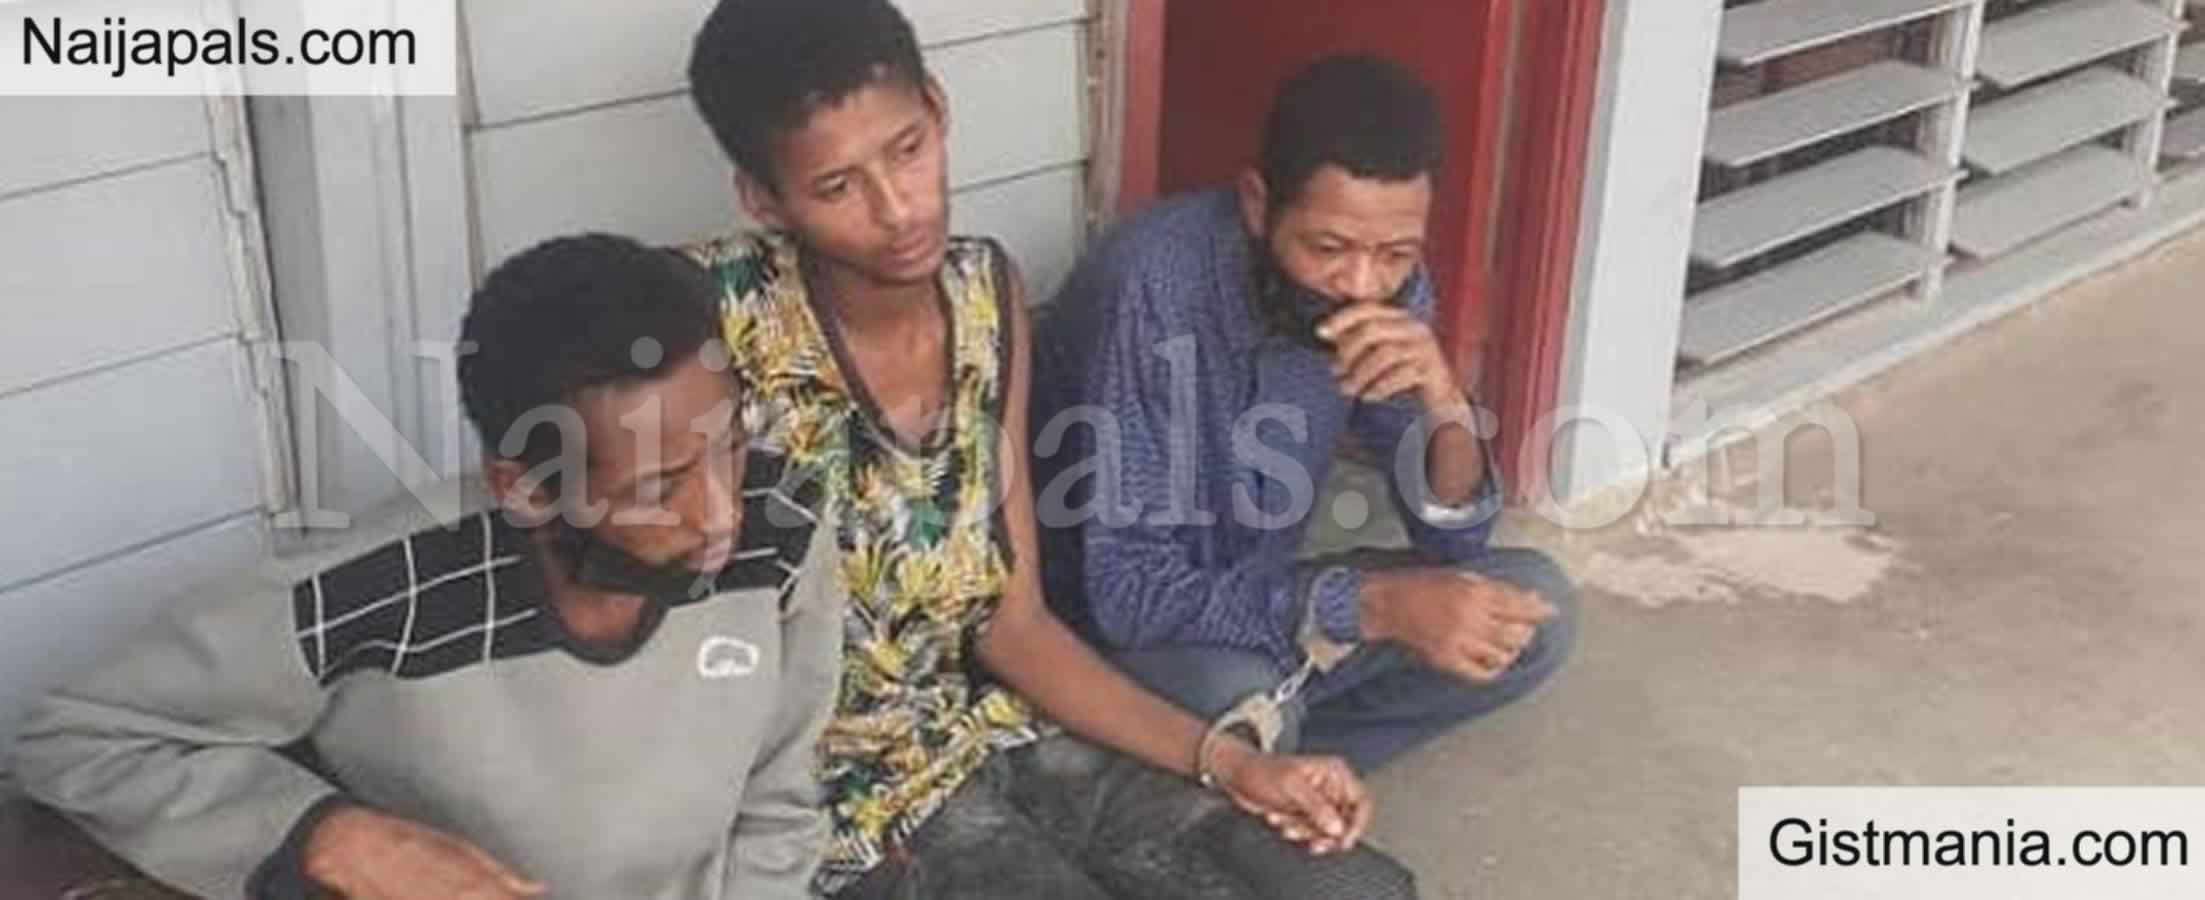 <img alt='.' class='lazyload' data-src='https://img.gistmania.com/emot/news.gif' /> <b>3 Fulani Men Arraigned To Court For Kidnapping Farmer And Collecting Ransom Of N1.6M</b> (PHOTO)